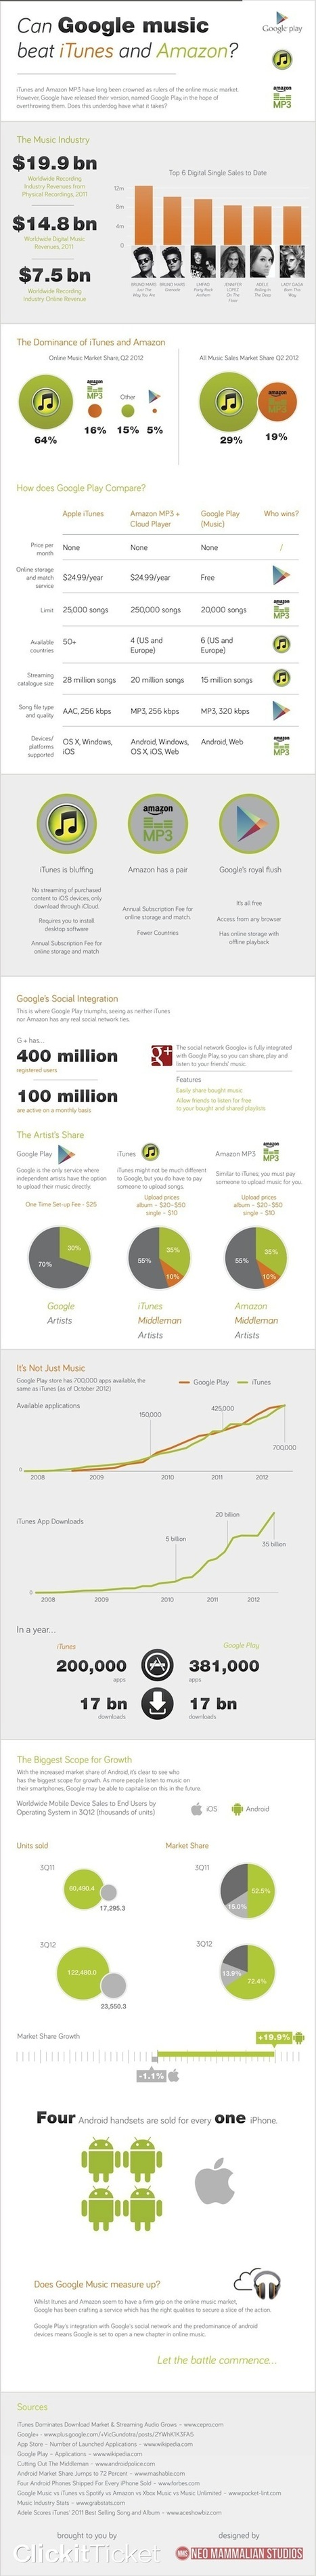 Can Google Music Beat iTunes and Amazon ? | Social Music Revolution | Scoop.it